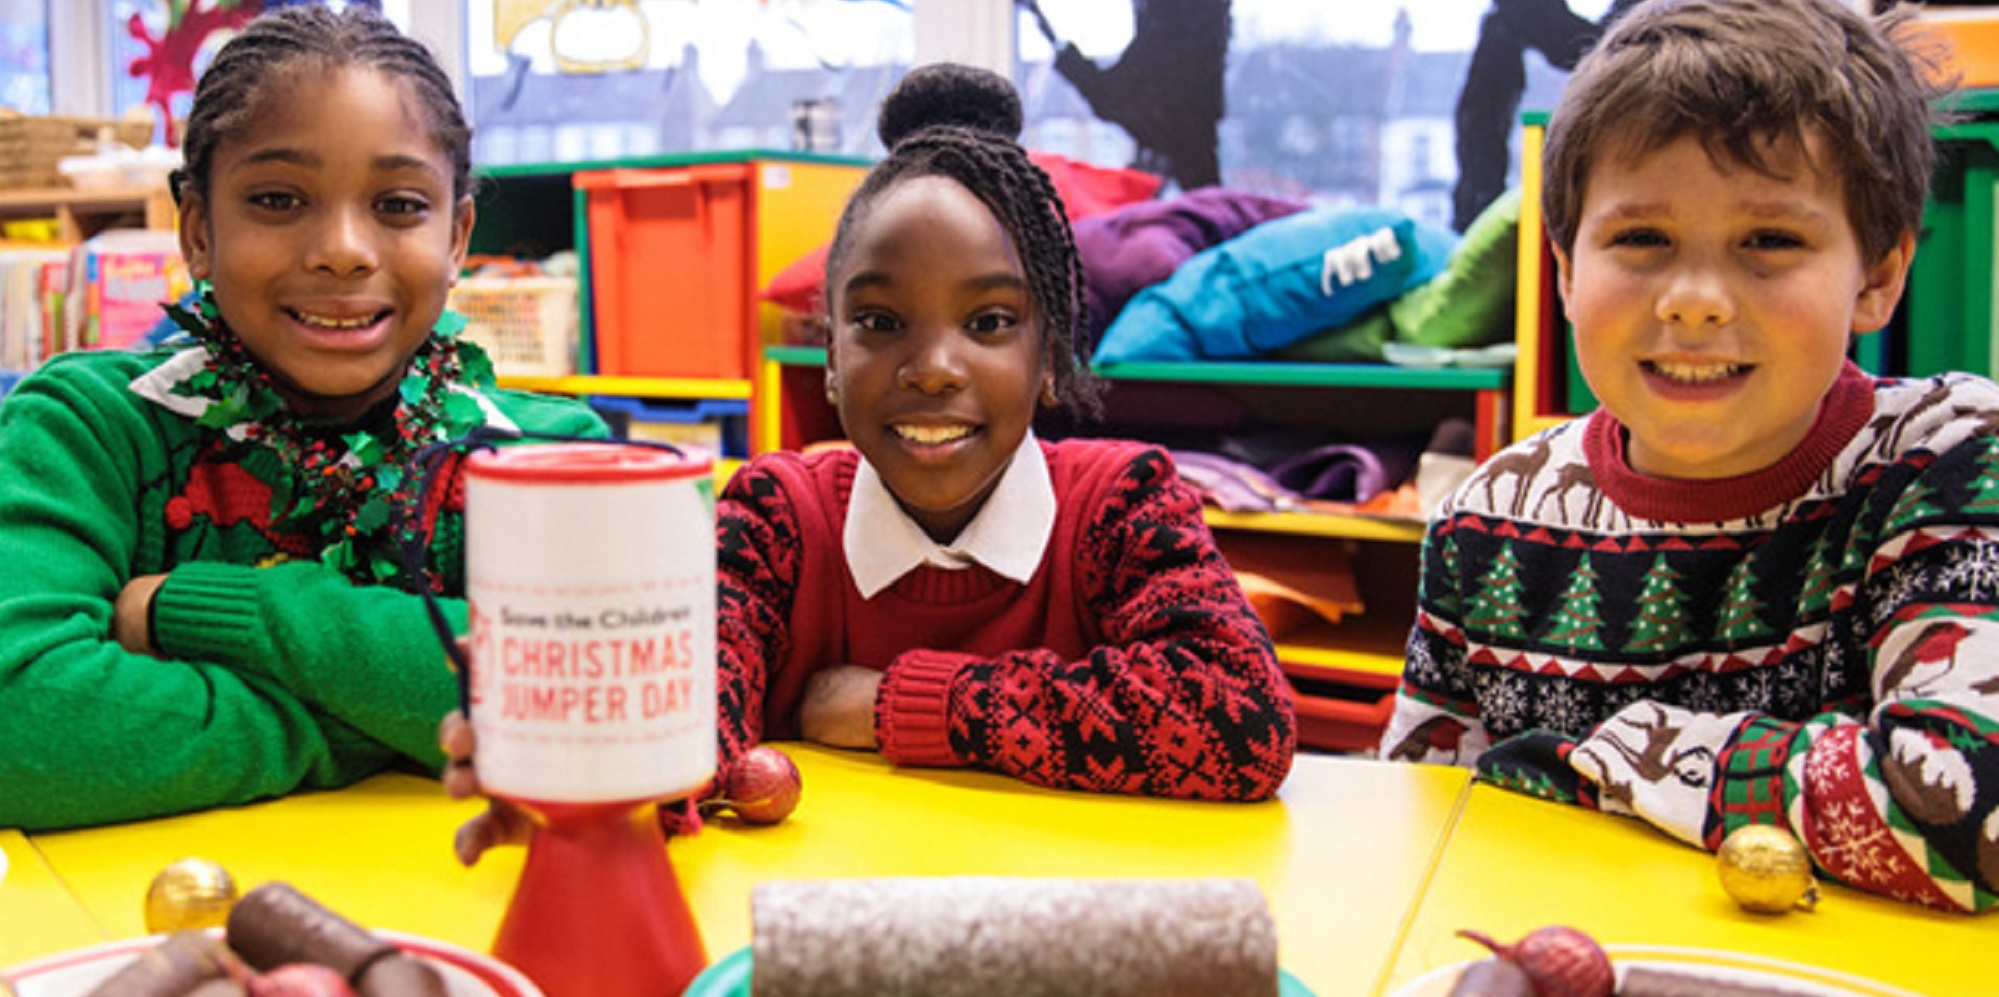 9. Save the Children - Christmas Jumper Day